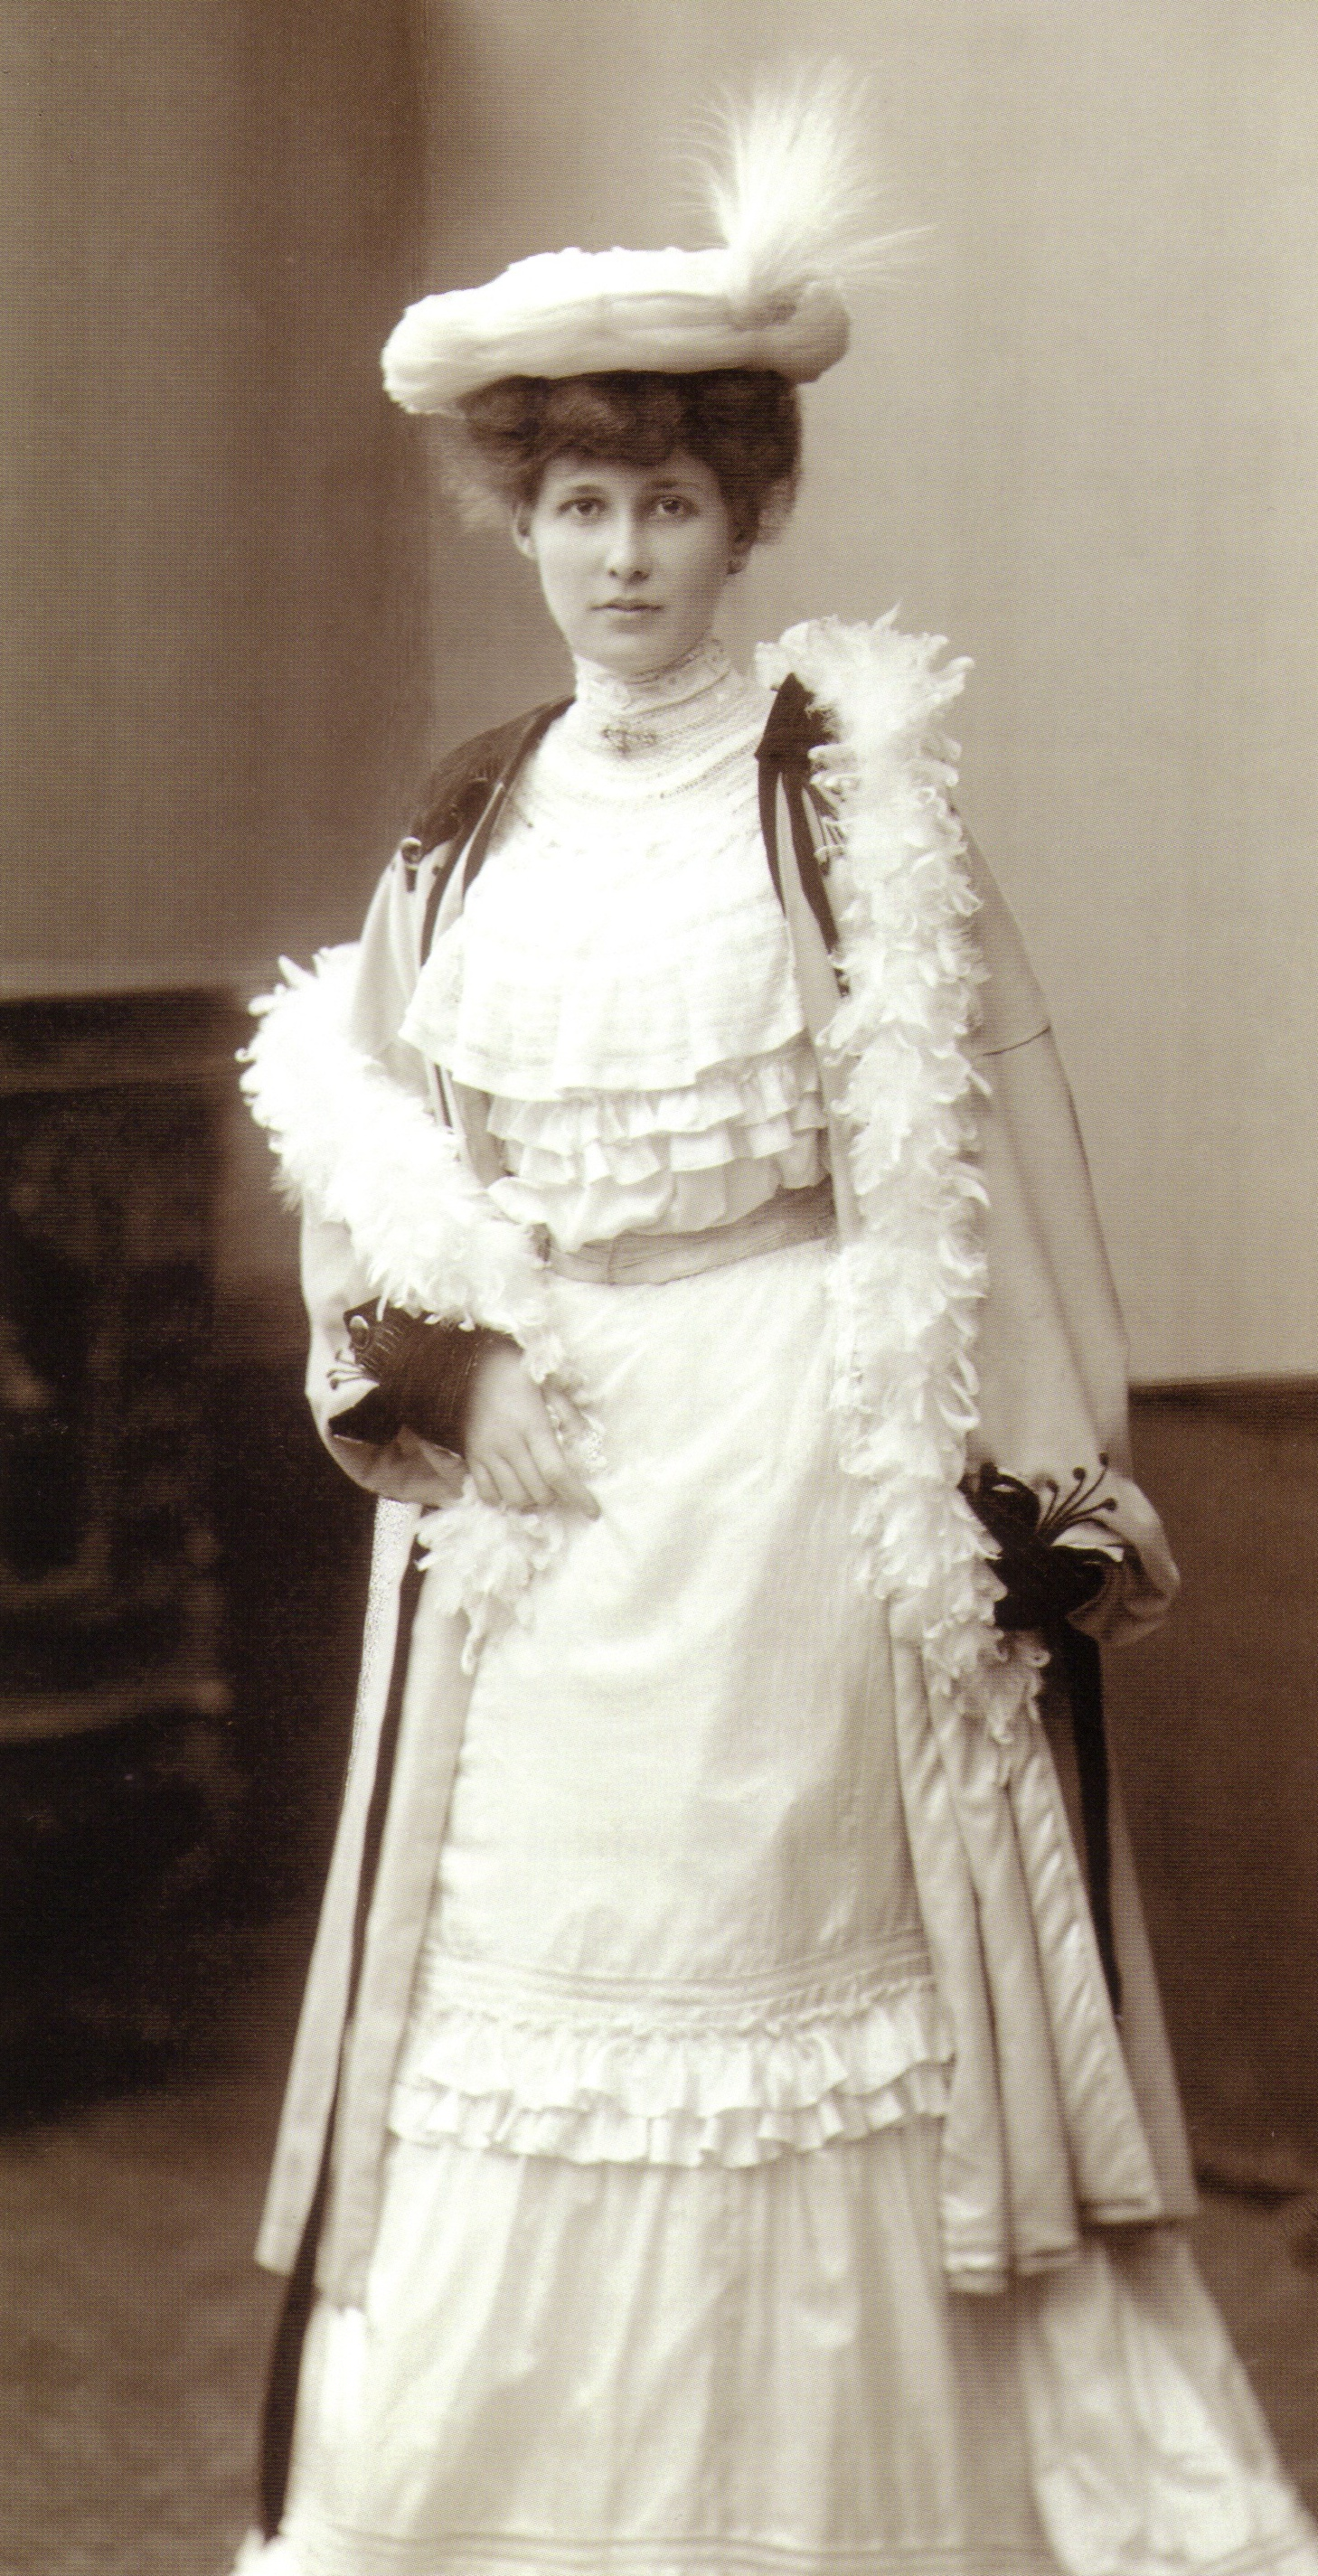 PORTRAIT OF A YOUNG WOMAN - 1902